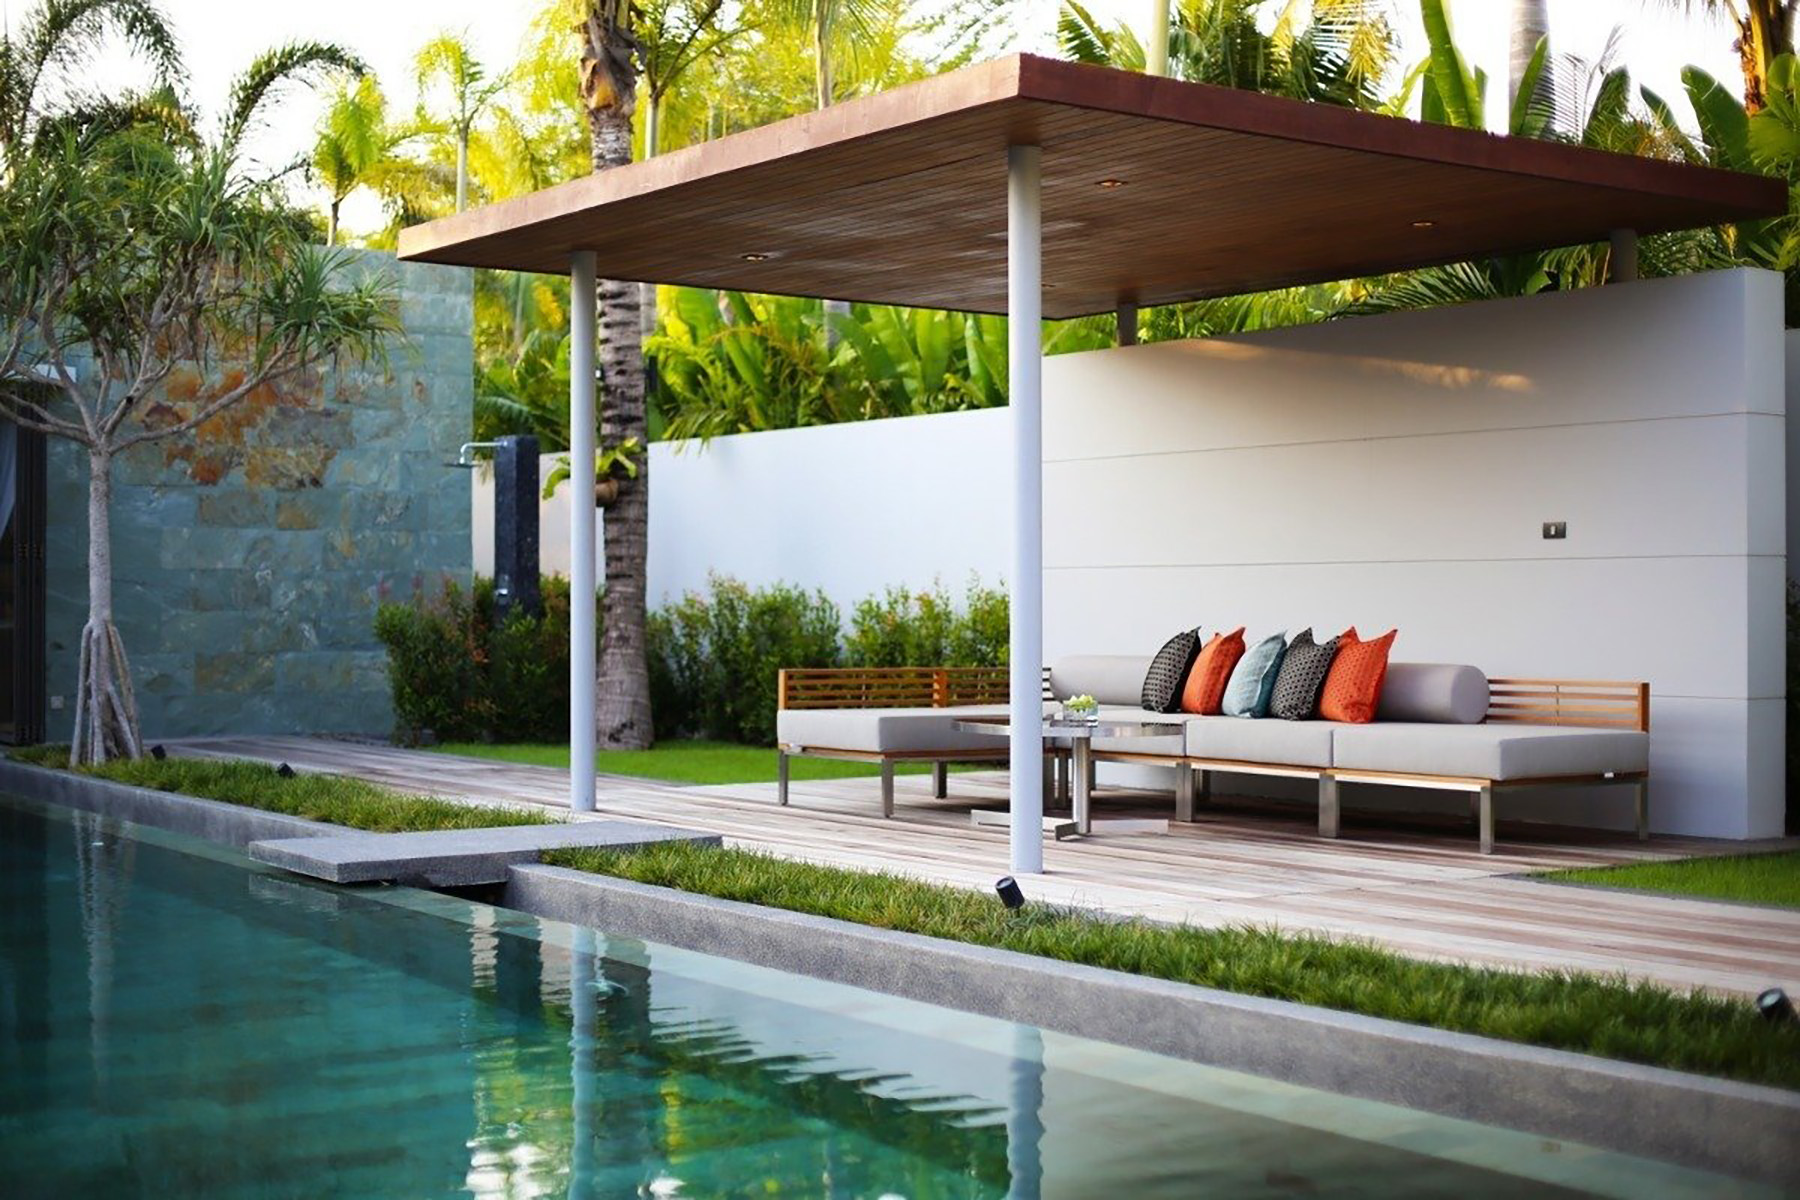 Poolside acacia wood outdoor furniture with plush cushions & pillows.